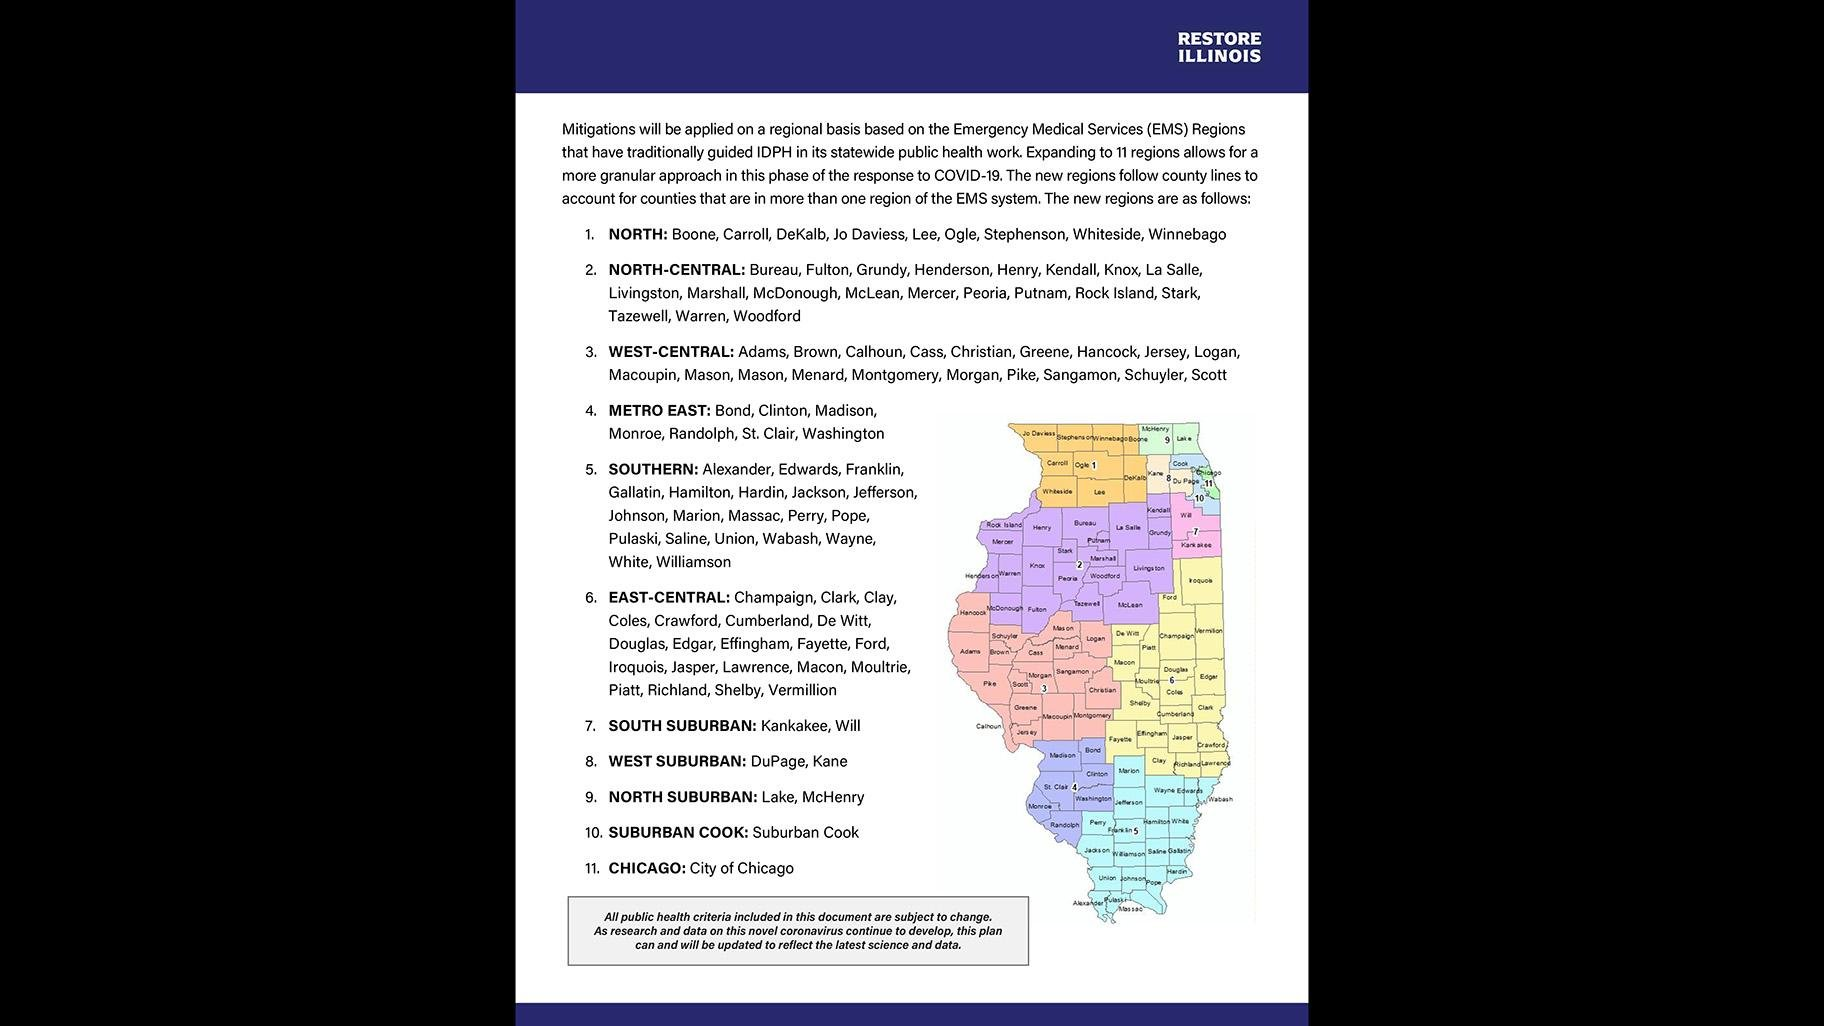 A map of Illinois' 11 regions. (Click to see full COVID-19 mitigation plan released by Gov. J.B. Pritzker.)